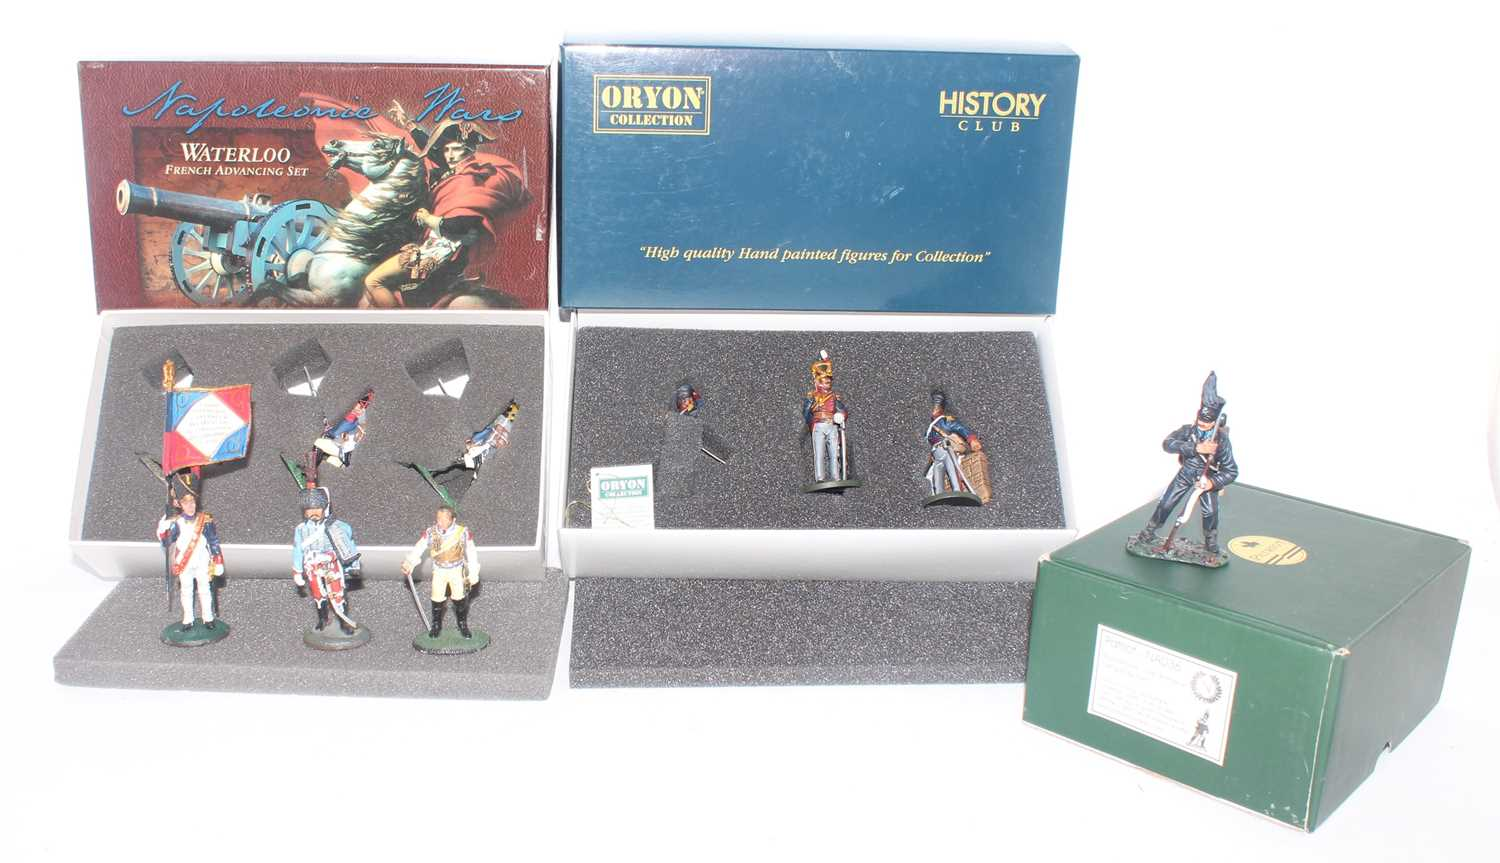 A collection of various Britains, Oryon, Patriot Miniatures, and Del Prado white metal military